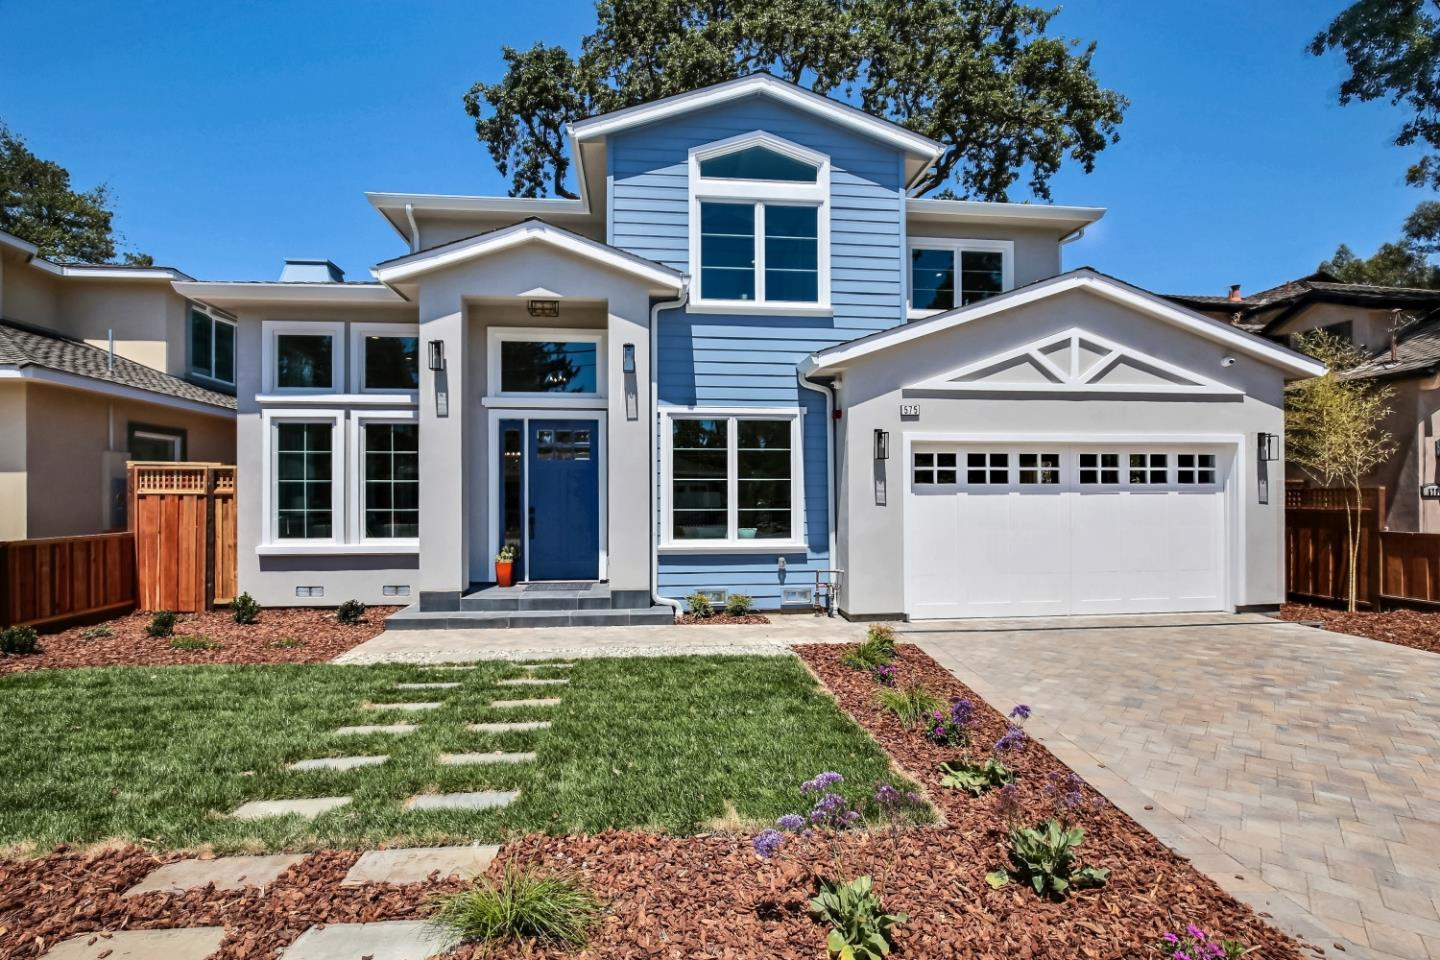 This stylish, new home is located in one of the most sought-after neighborhoods and adjacent to Atherton. The main level offers an expansive living room/dining room combination with soaring ceilings, loads of natural light, a sleek fireplace and custom built-ins; a gourmet chefs kitchen with a center island, all Thermador appliances, quartz countertops and a cozy breakfast seating area; a generous sized family room which includes large glass doors to the deck and backyard; a separate office; one en-suite bedroom, full size laundry and a lovely powder room. The second level has the private main en-suite bedroom with a luxurious bath including a free-standing tub and large shower, a walk-in closet and a slider to the balcony overlooking the backyard; two additional en-suite bedrooms complete this floor.  Enjoy the professionally landscaped yard with over 1,100 sf of Trex deck, new lawn and nice plantings. European oak floors throughout, air conditioning and a two-car attached garage.